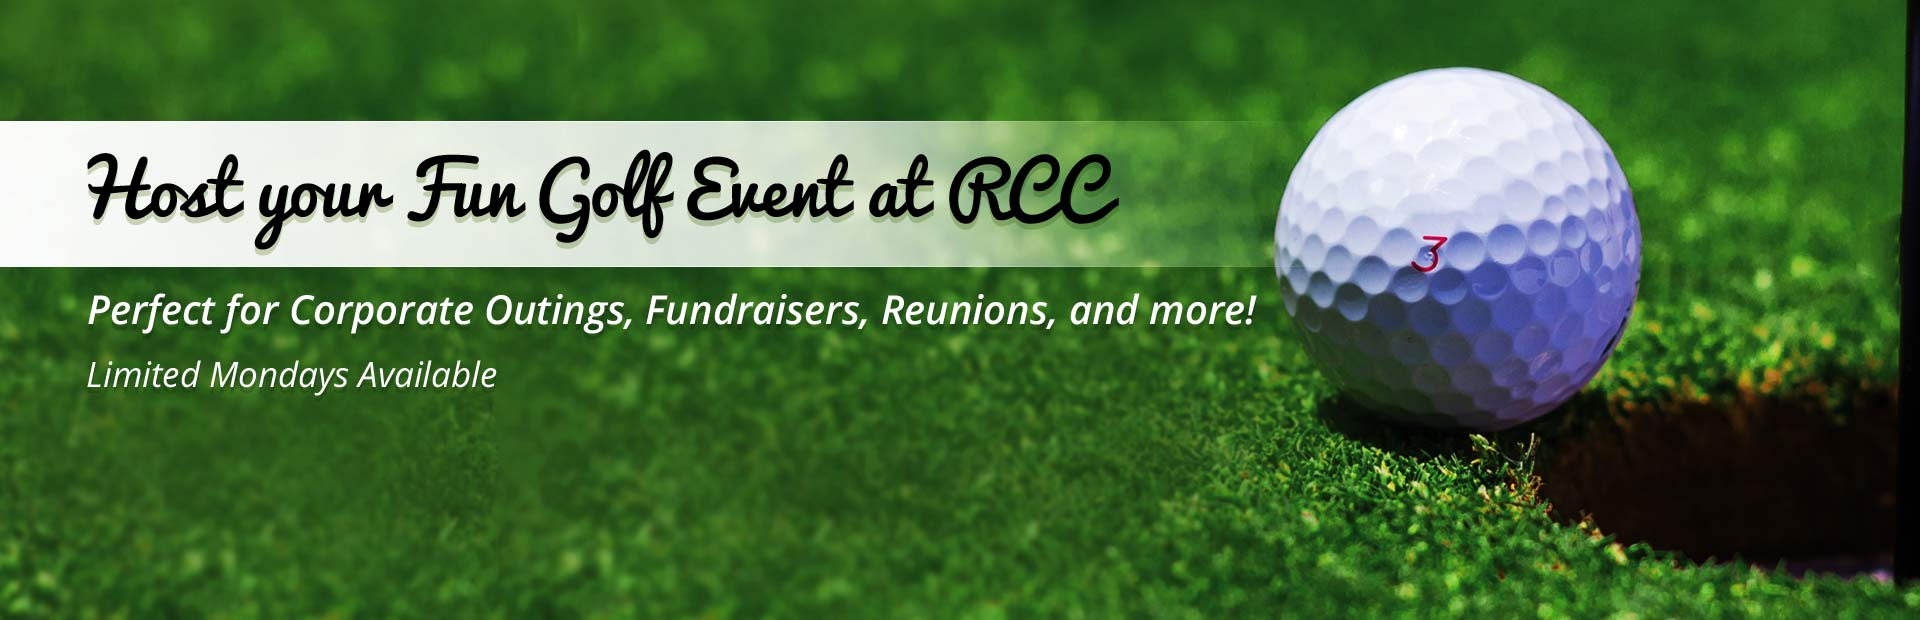 Host your fun golf event at RCC: Perfect for corporate outings, fundraisers, reunions, and more!